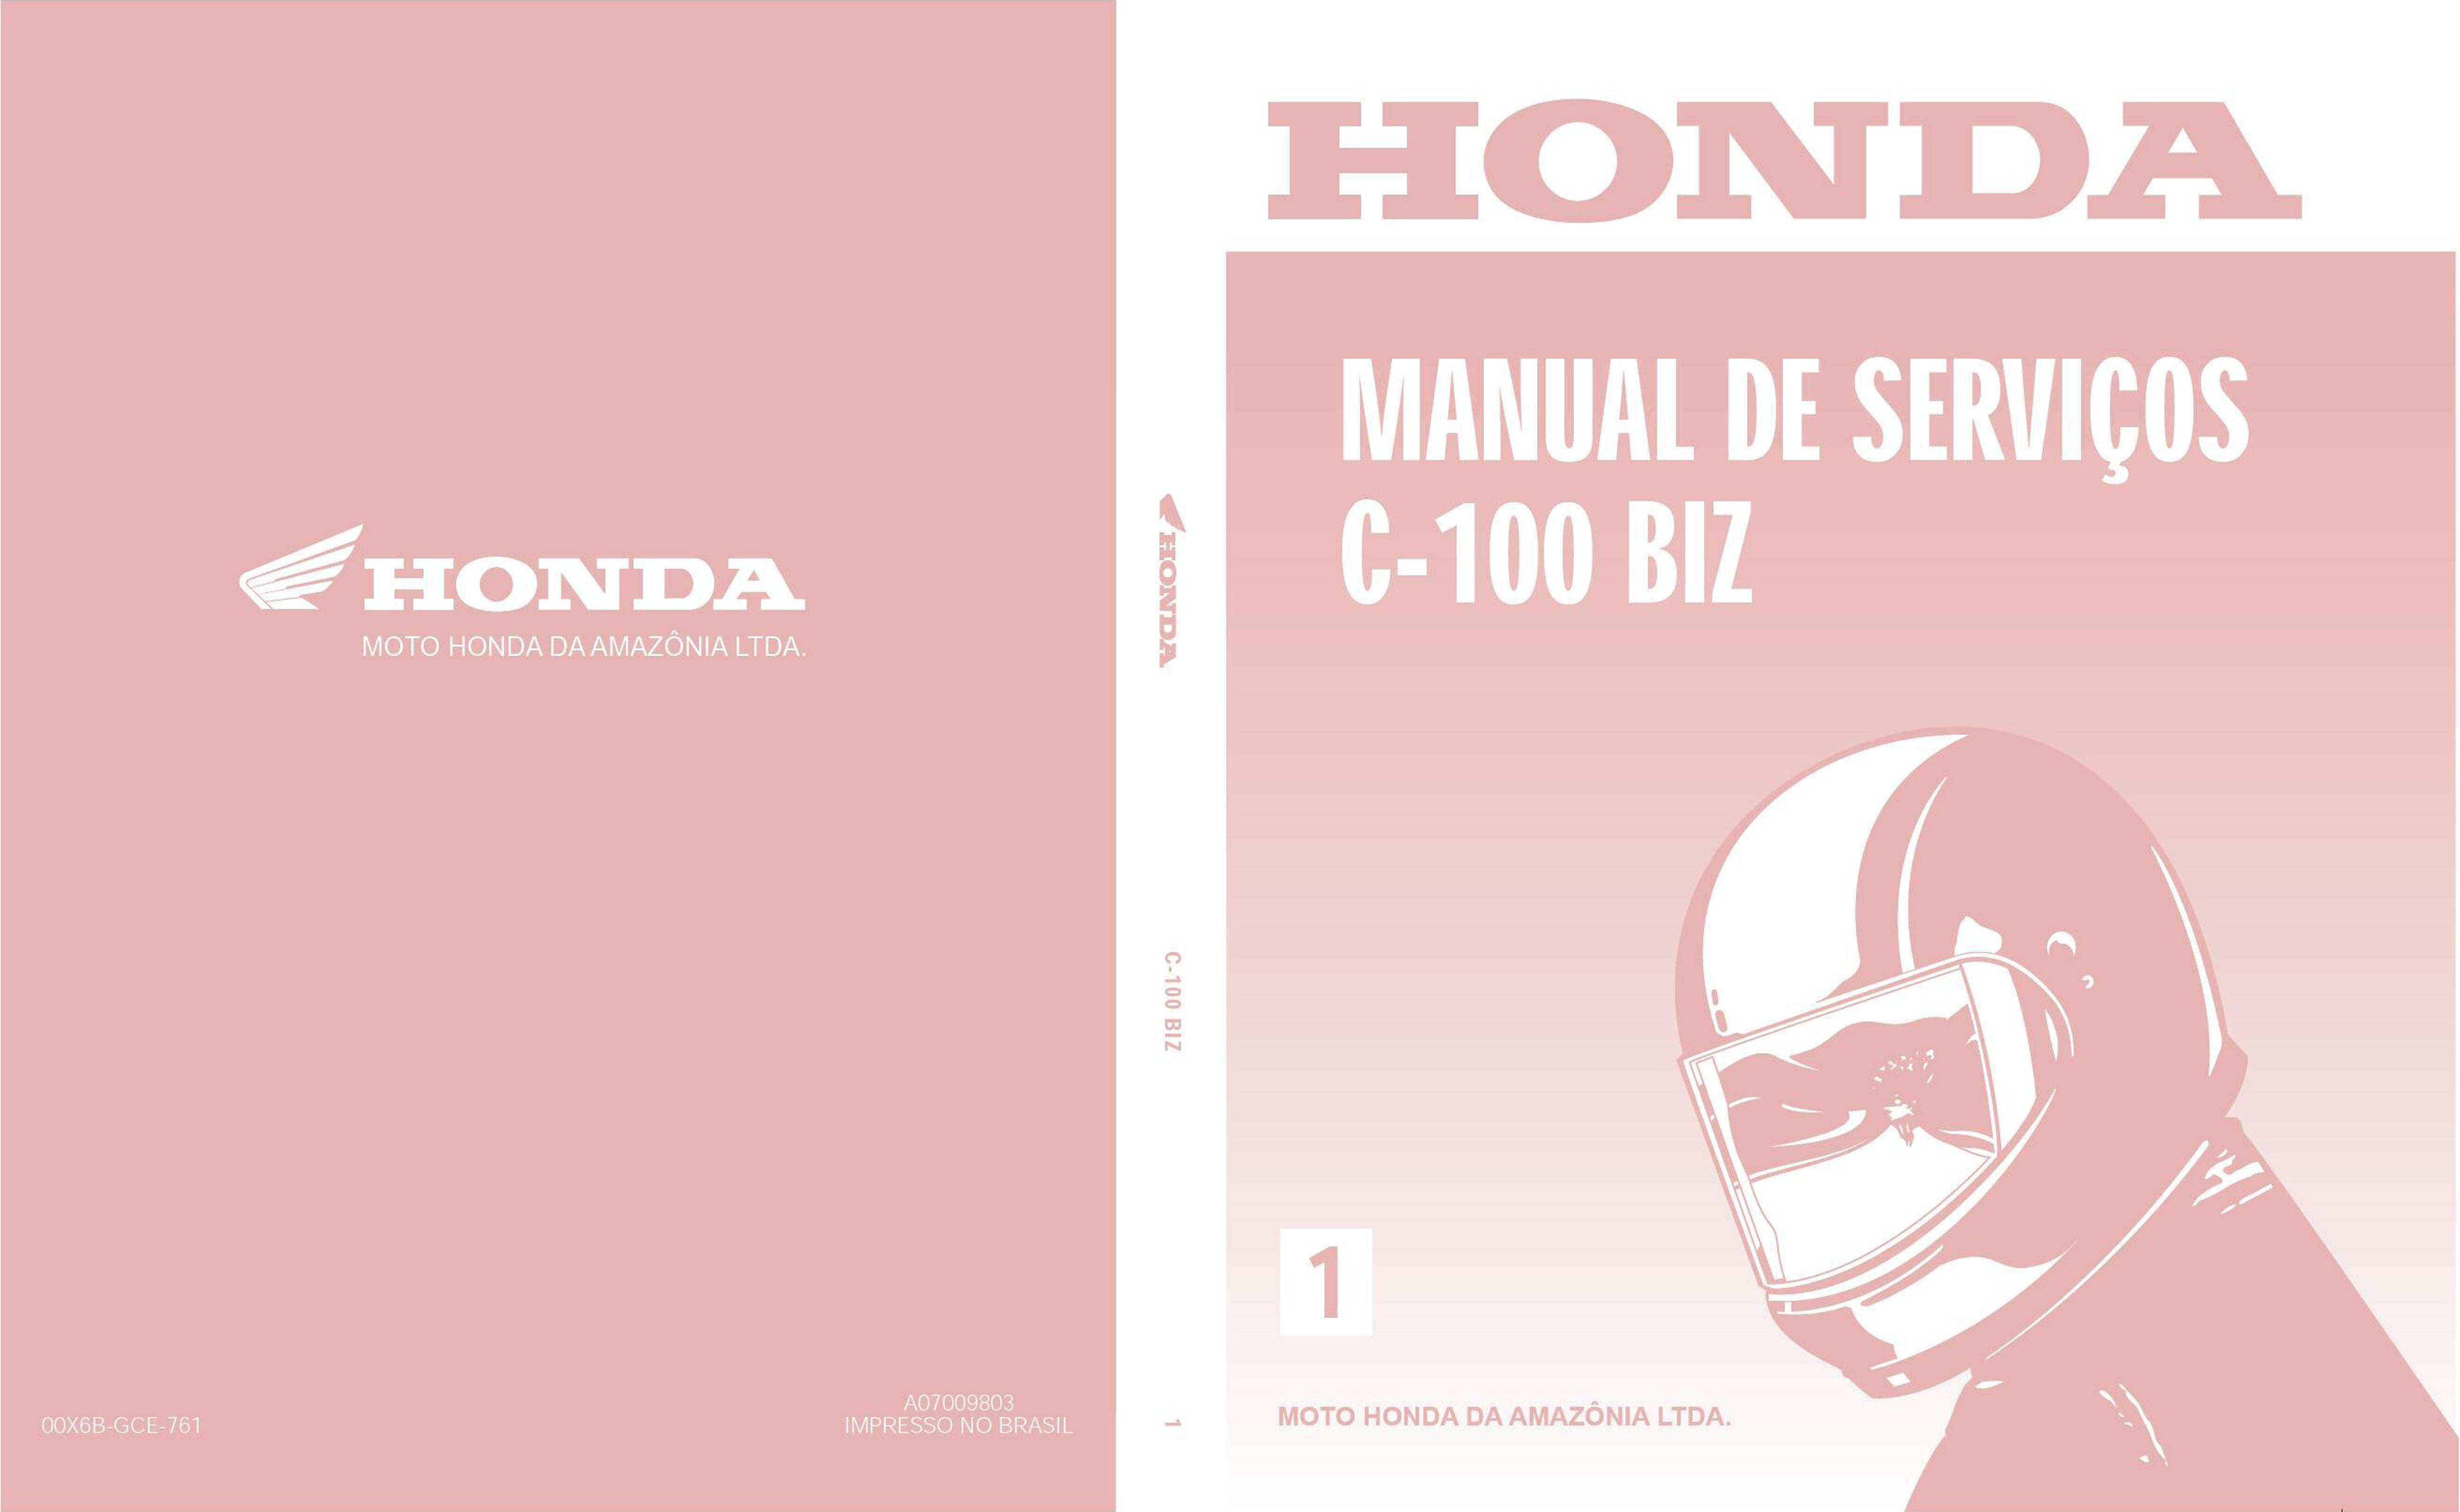 Workshop manual for Honda C100 BIZ (Portuguese)